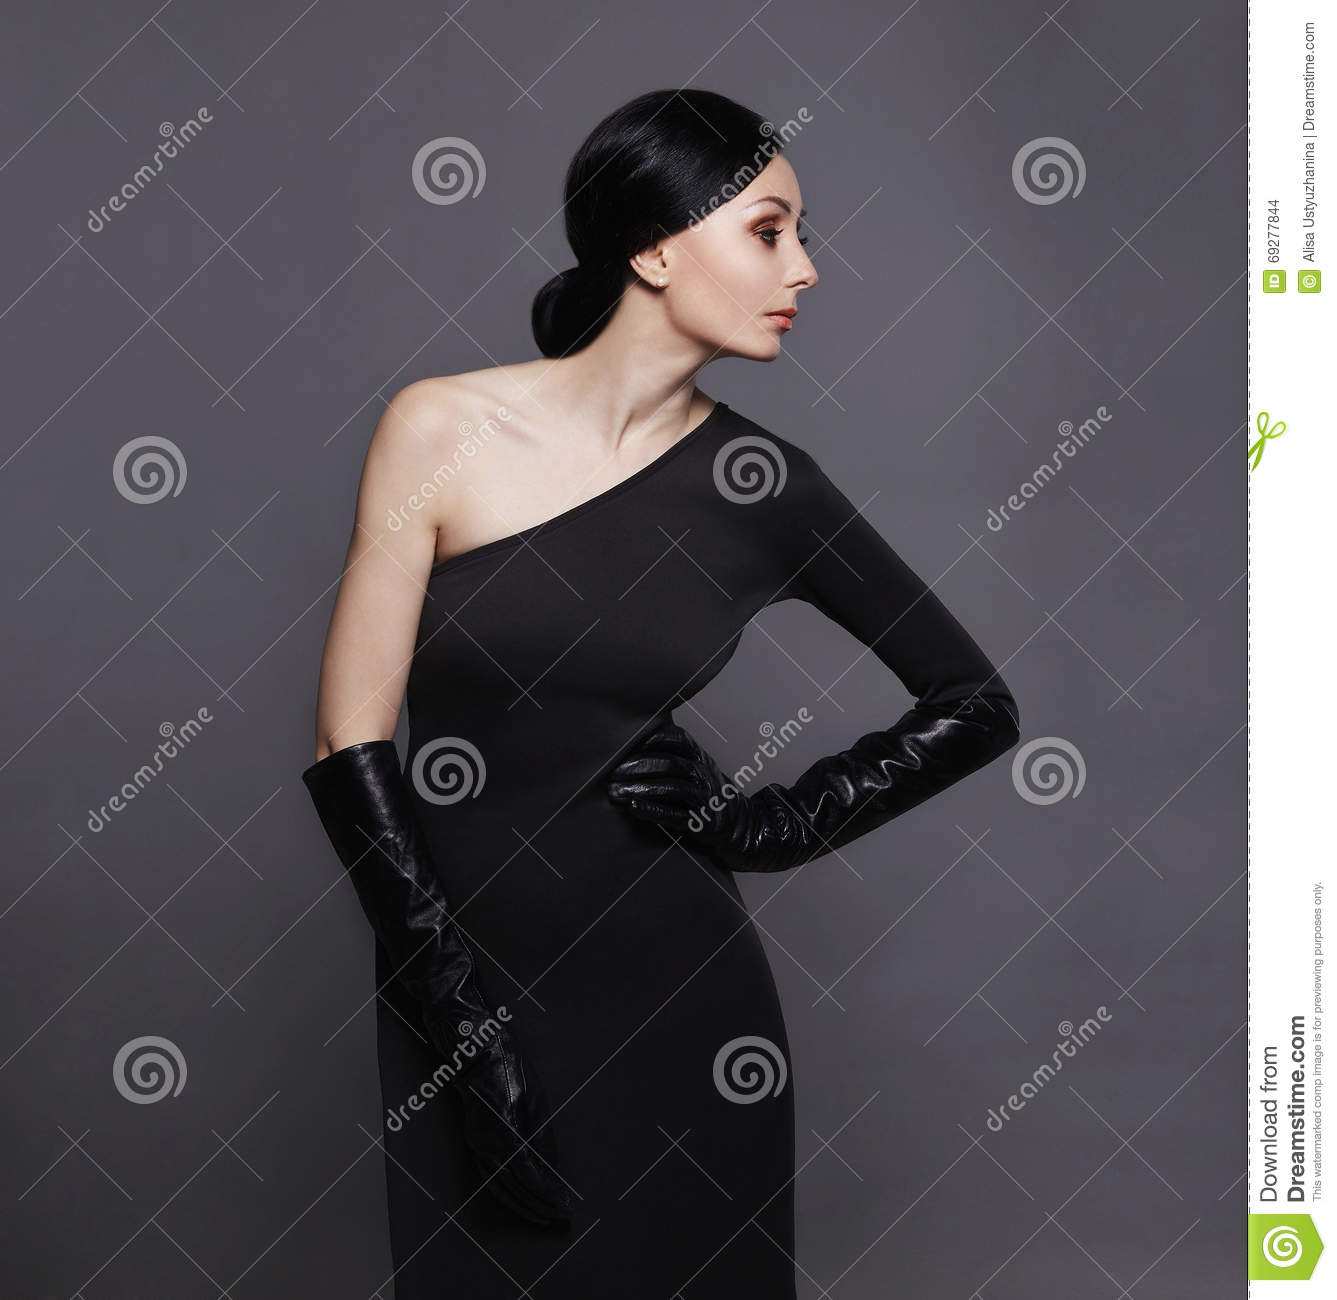 Black leather gloves female - Woman In Black Dress And Leather Gloves